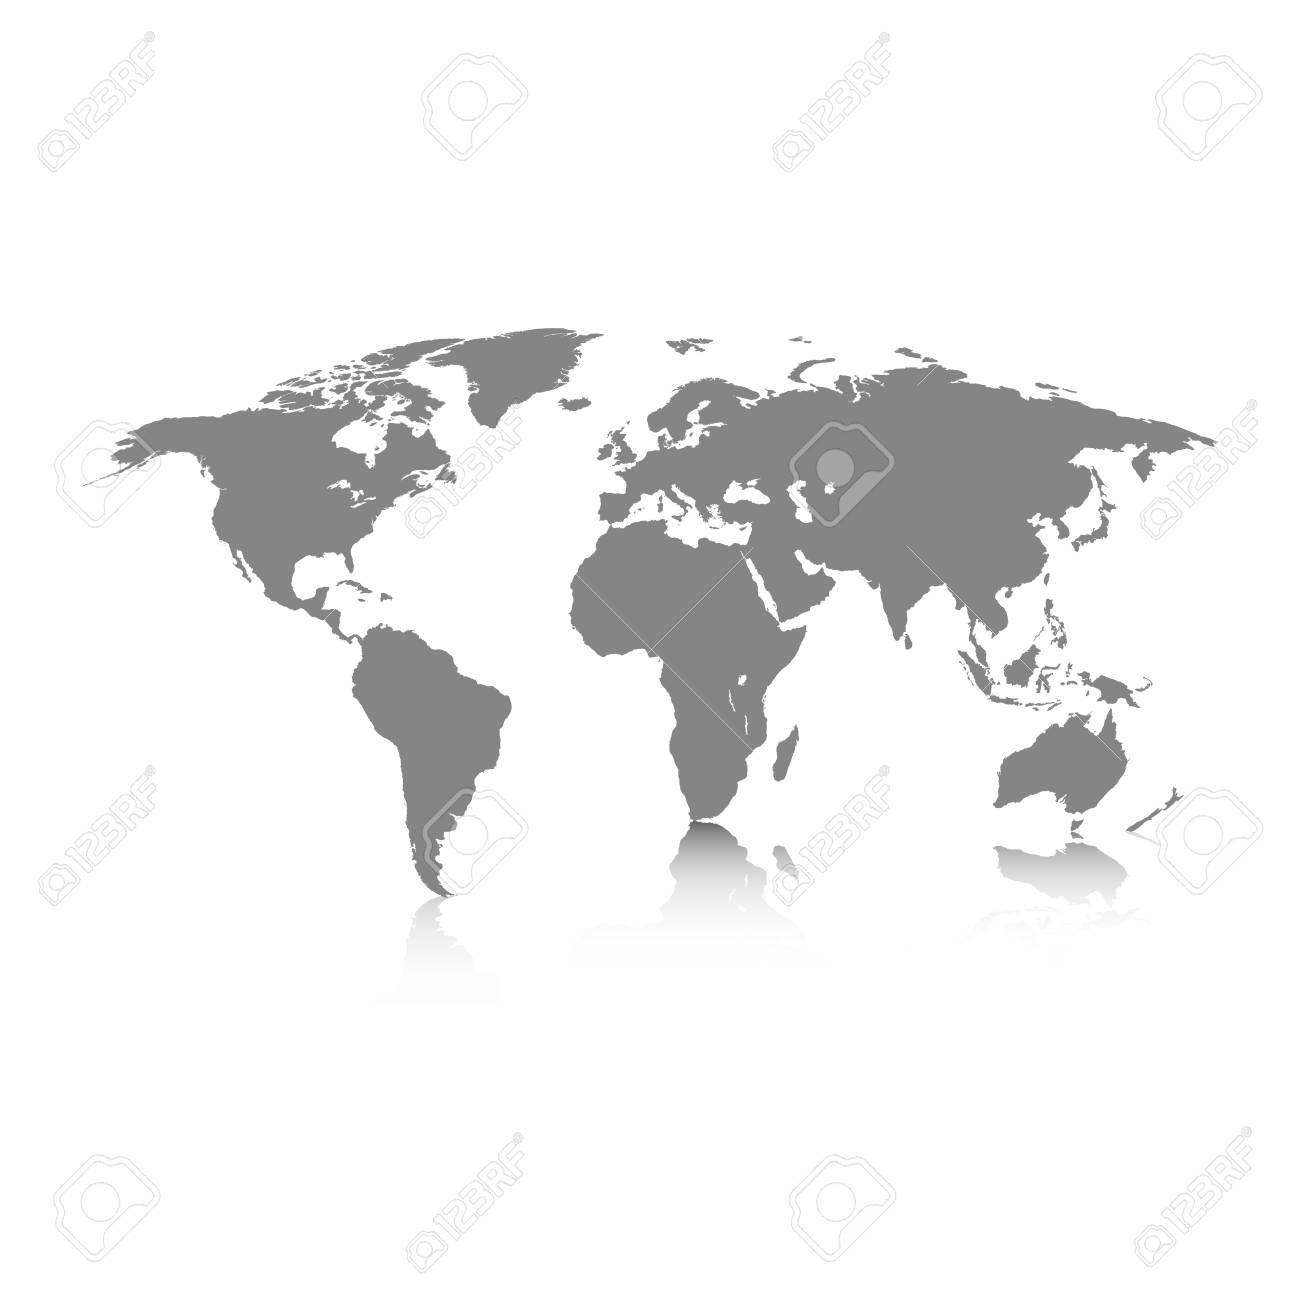 World map grey colored on a white background royalty free cliparts vector world map grey colored on a white background gumiabroncs Gallery